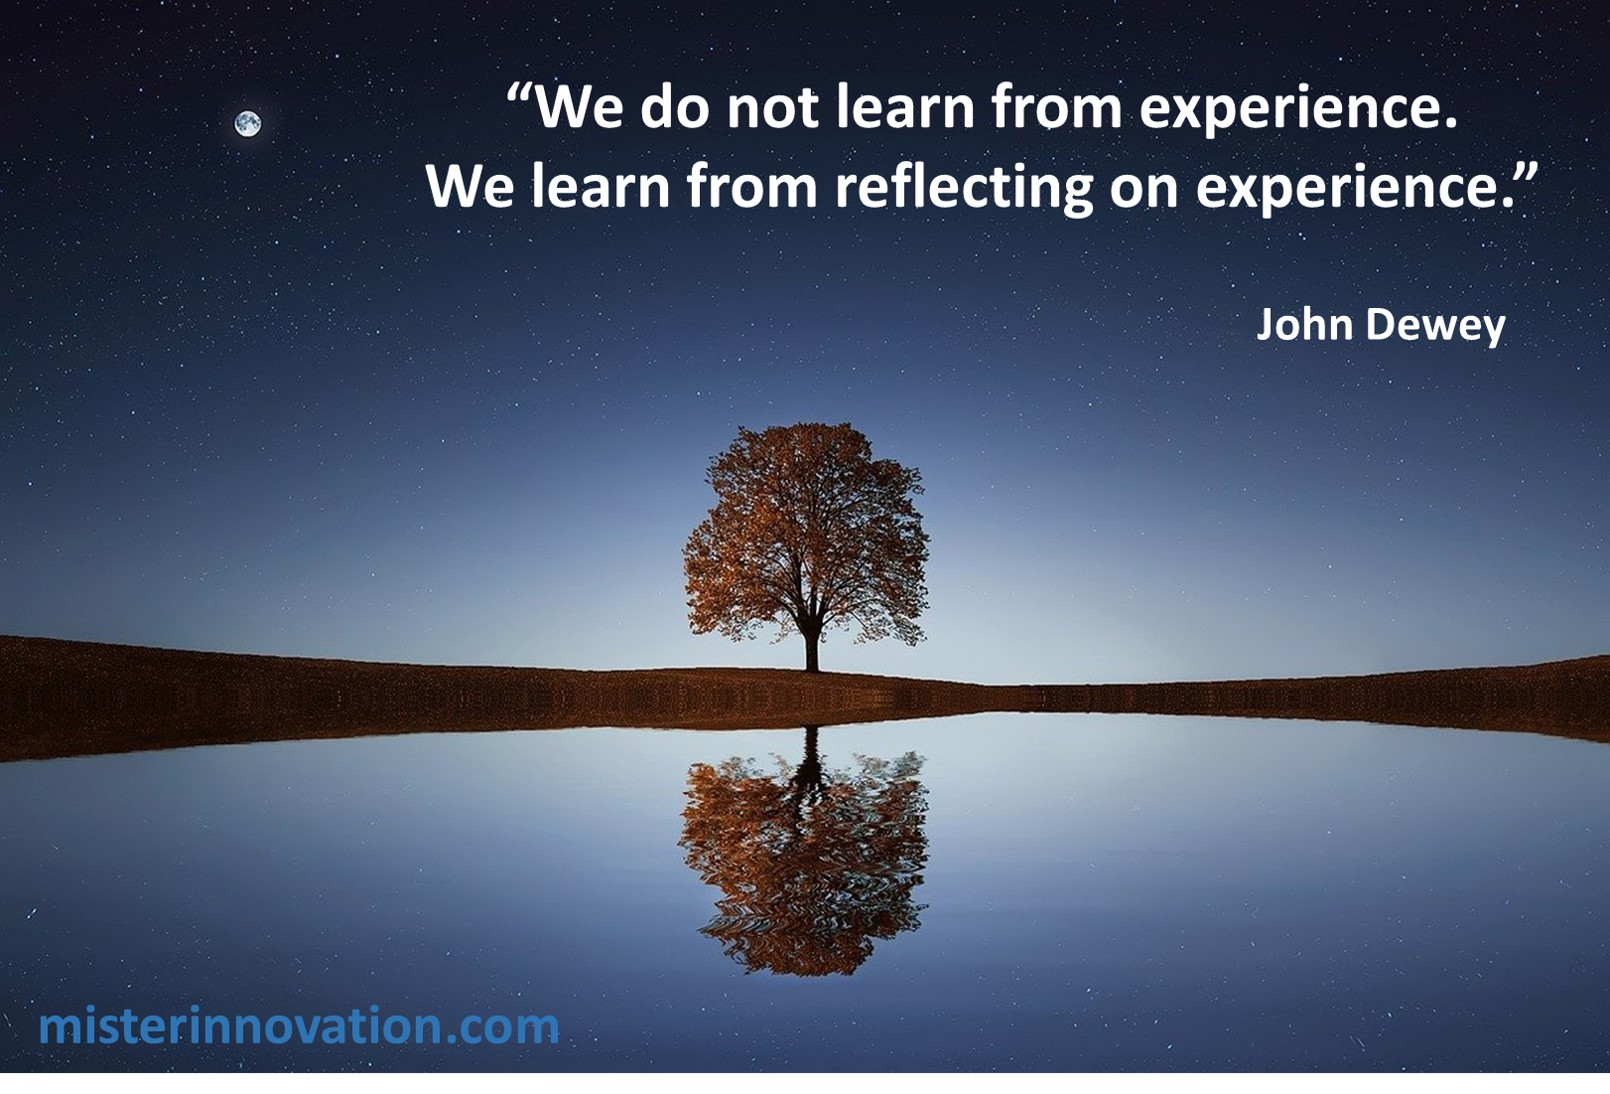 John Dewey Quote on Learn from Reflection not Experience